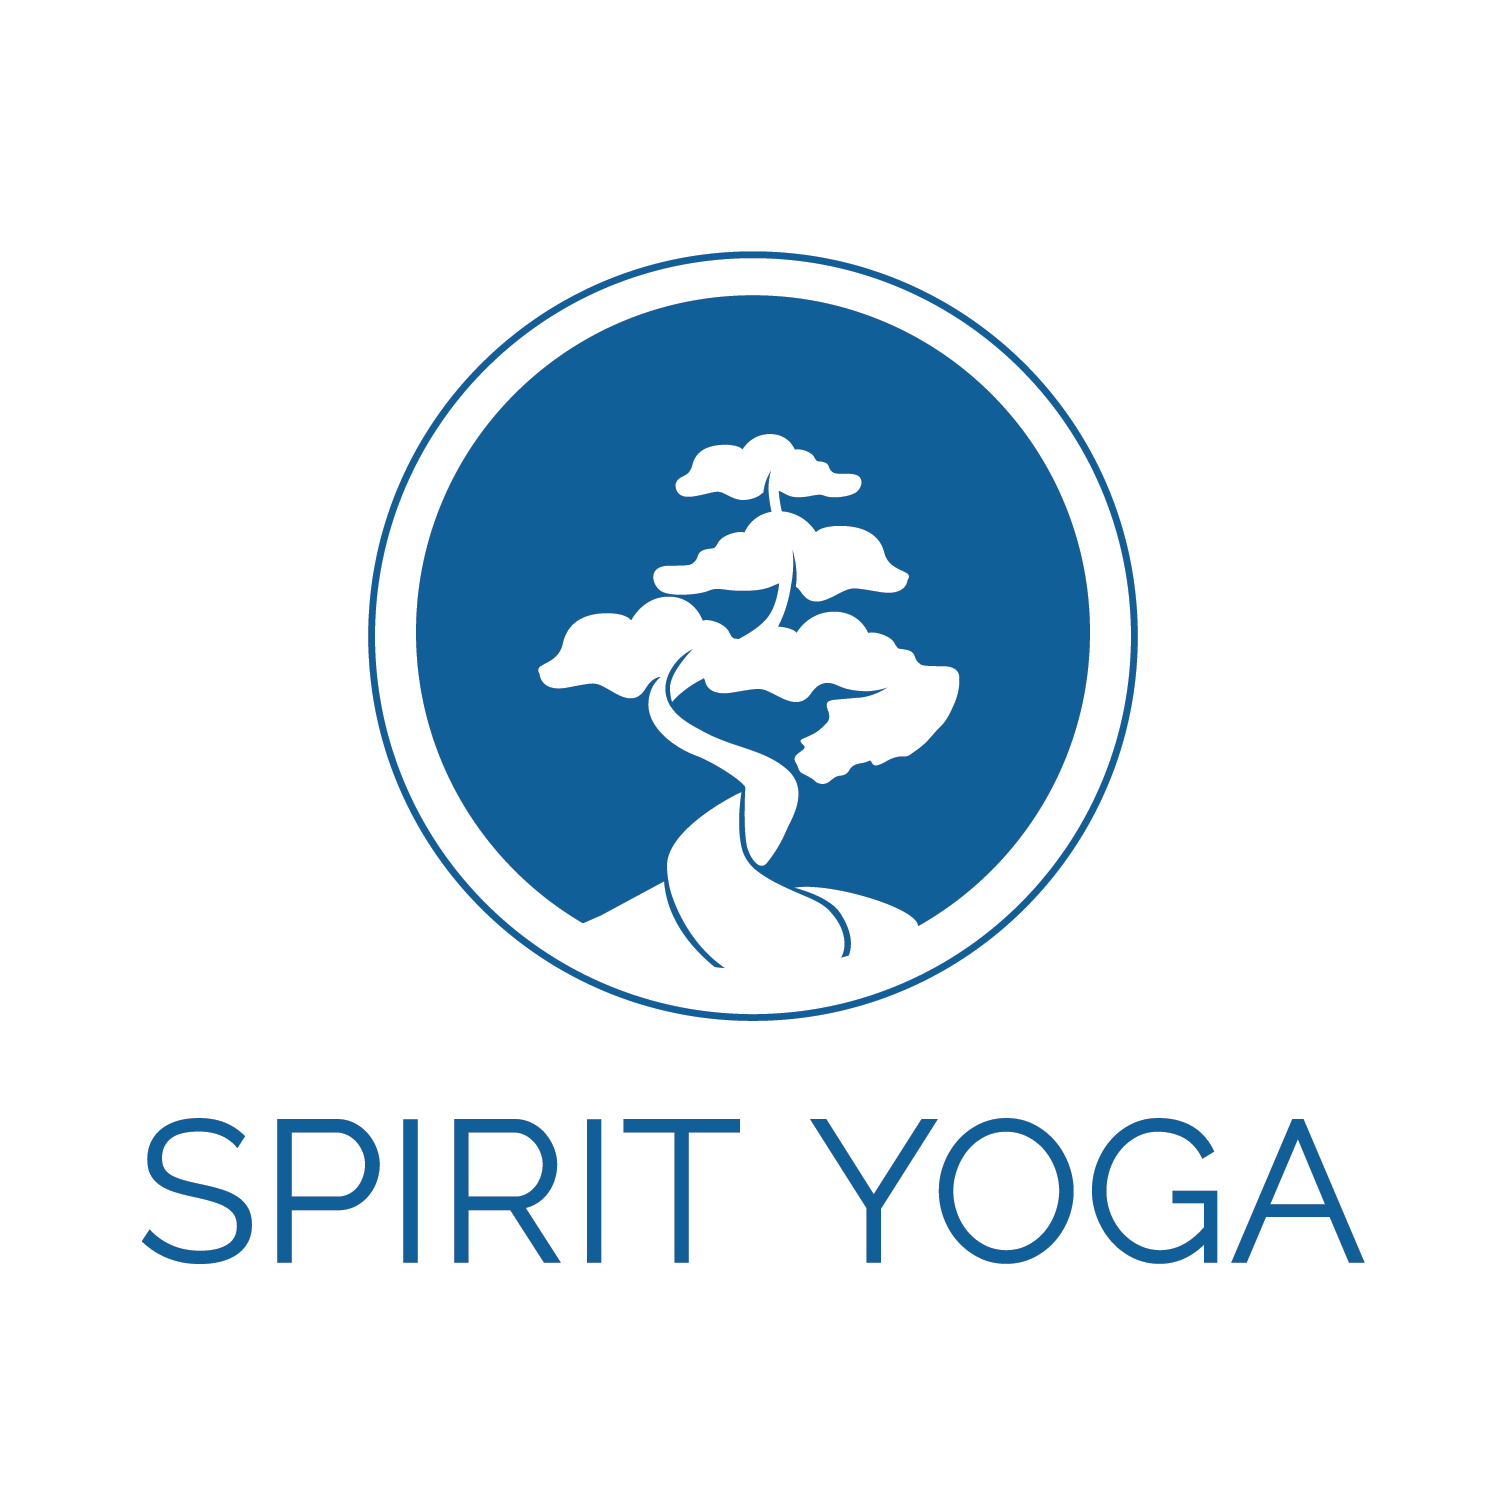 Spirit Yoga Logo Design + Rebrand - Spirit Yoga is a thriving yoga studio based in San Diego with a focus in community for all types of individuals regardless of flexibility, age, gender or shape. The studio wanted to embody their comfortable space to practice and connect with others.